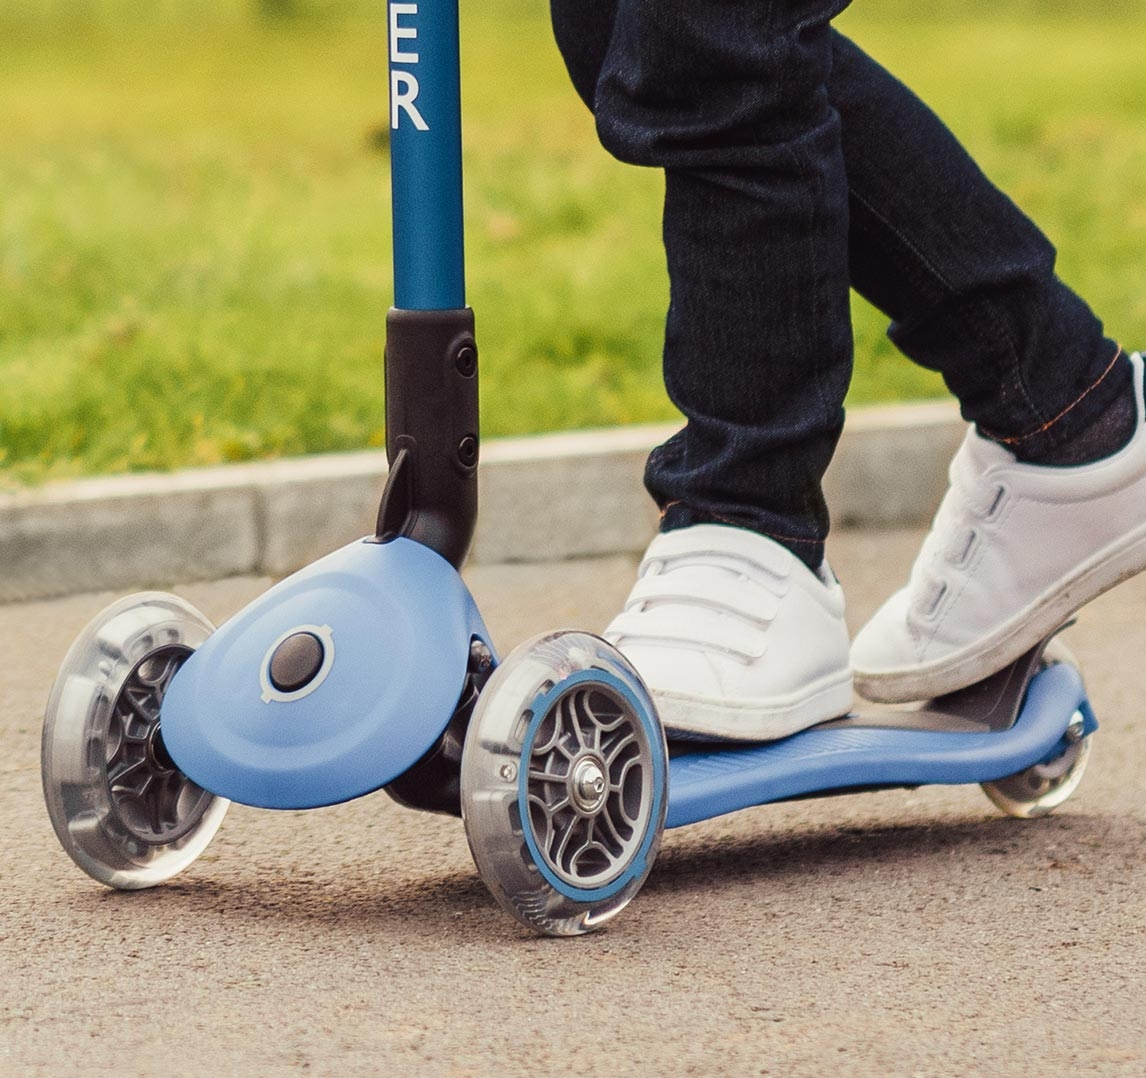 Blue 3 wheel scooter for kids